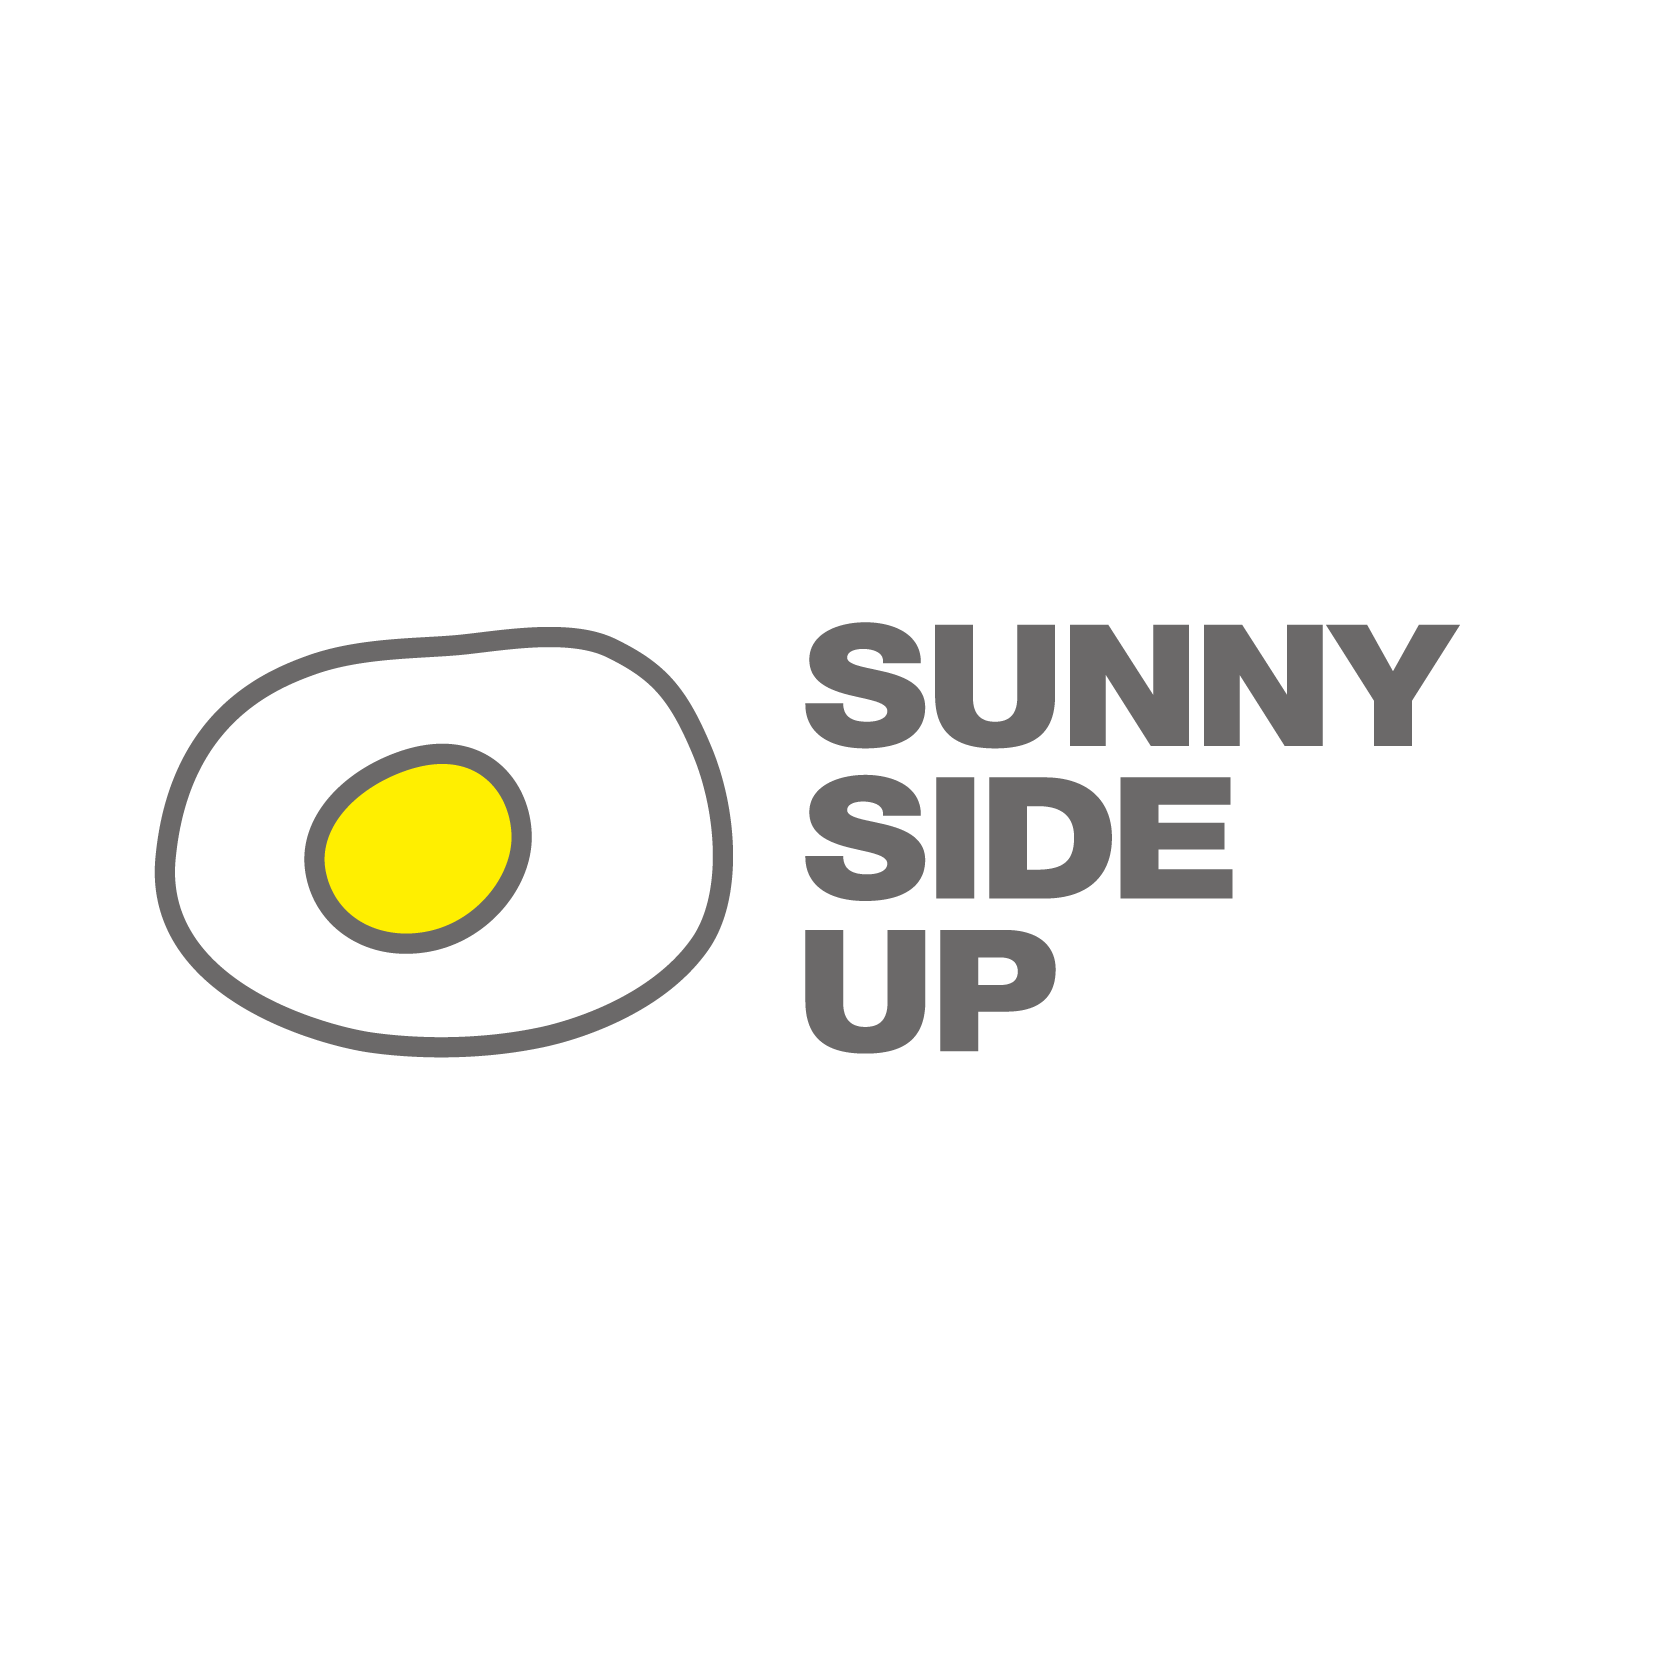 sunny side up タテ-02.png